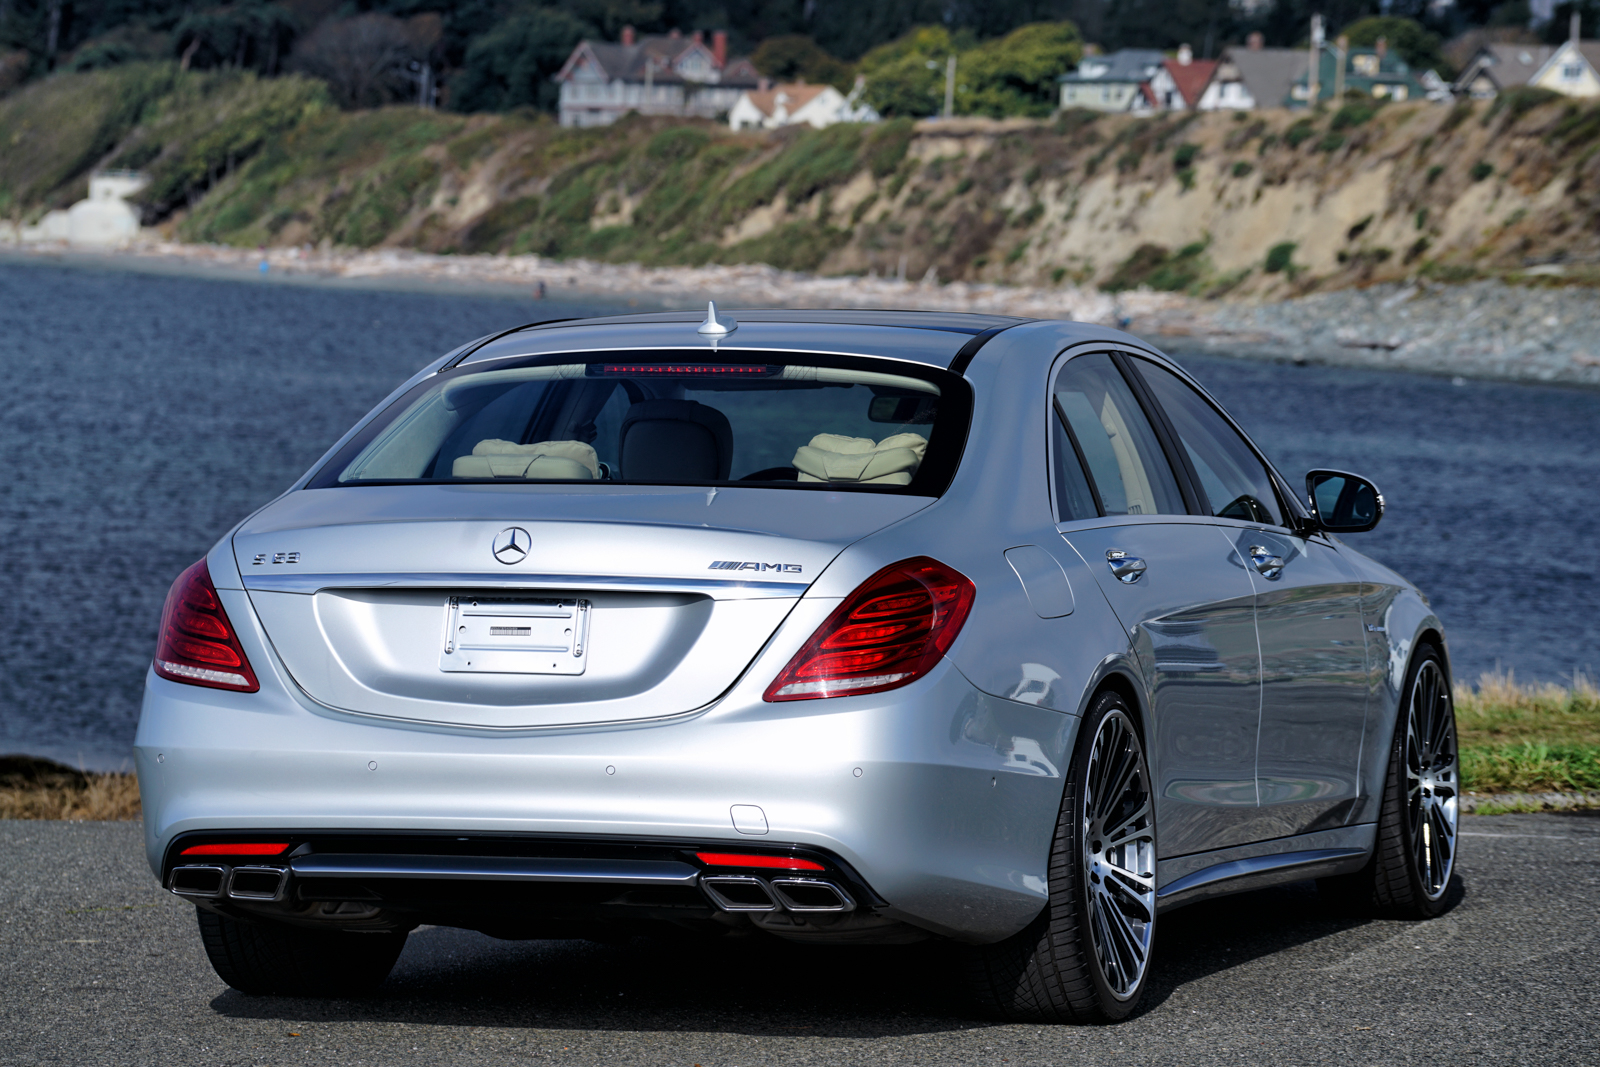 2014 mercedes benz s63 amg for sale silver arrow cars ltd for 2014 mercedes benz s63 amg for sale